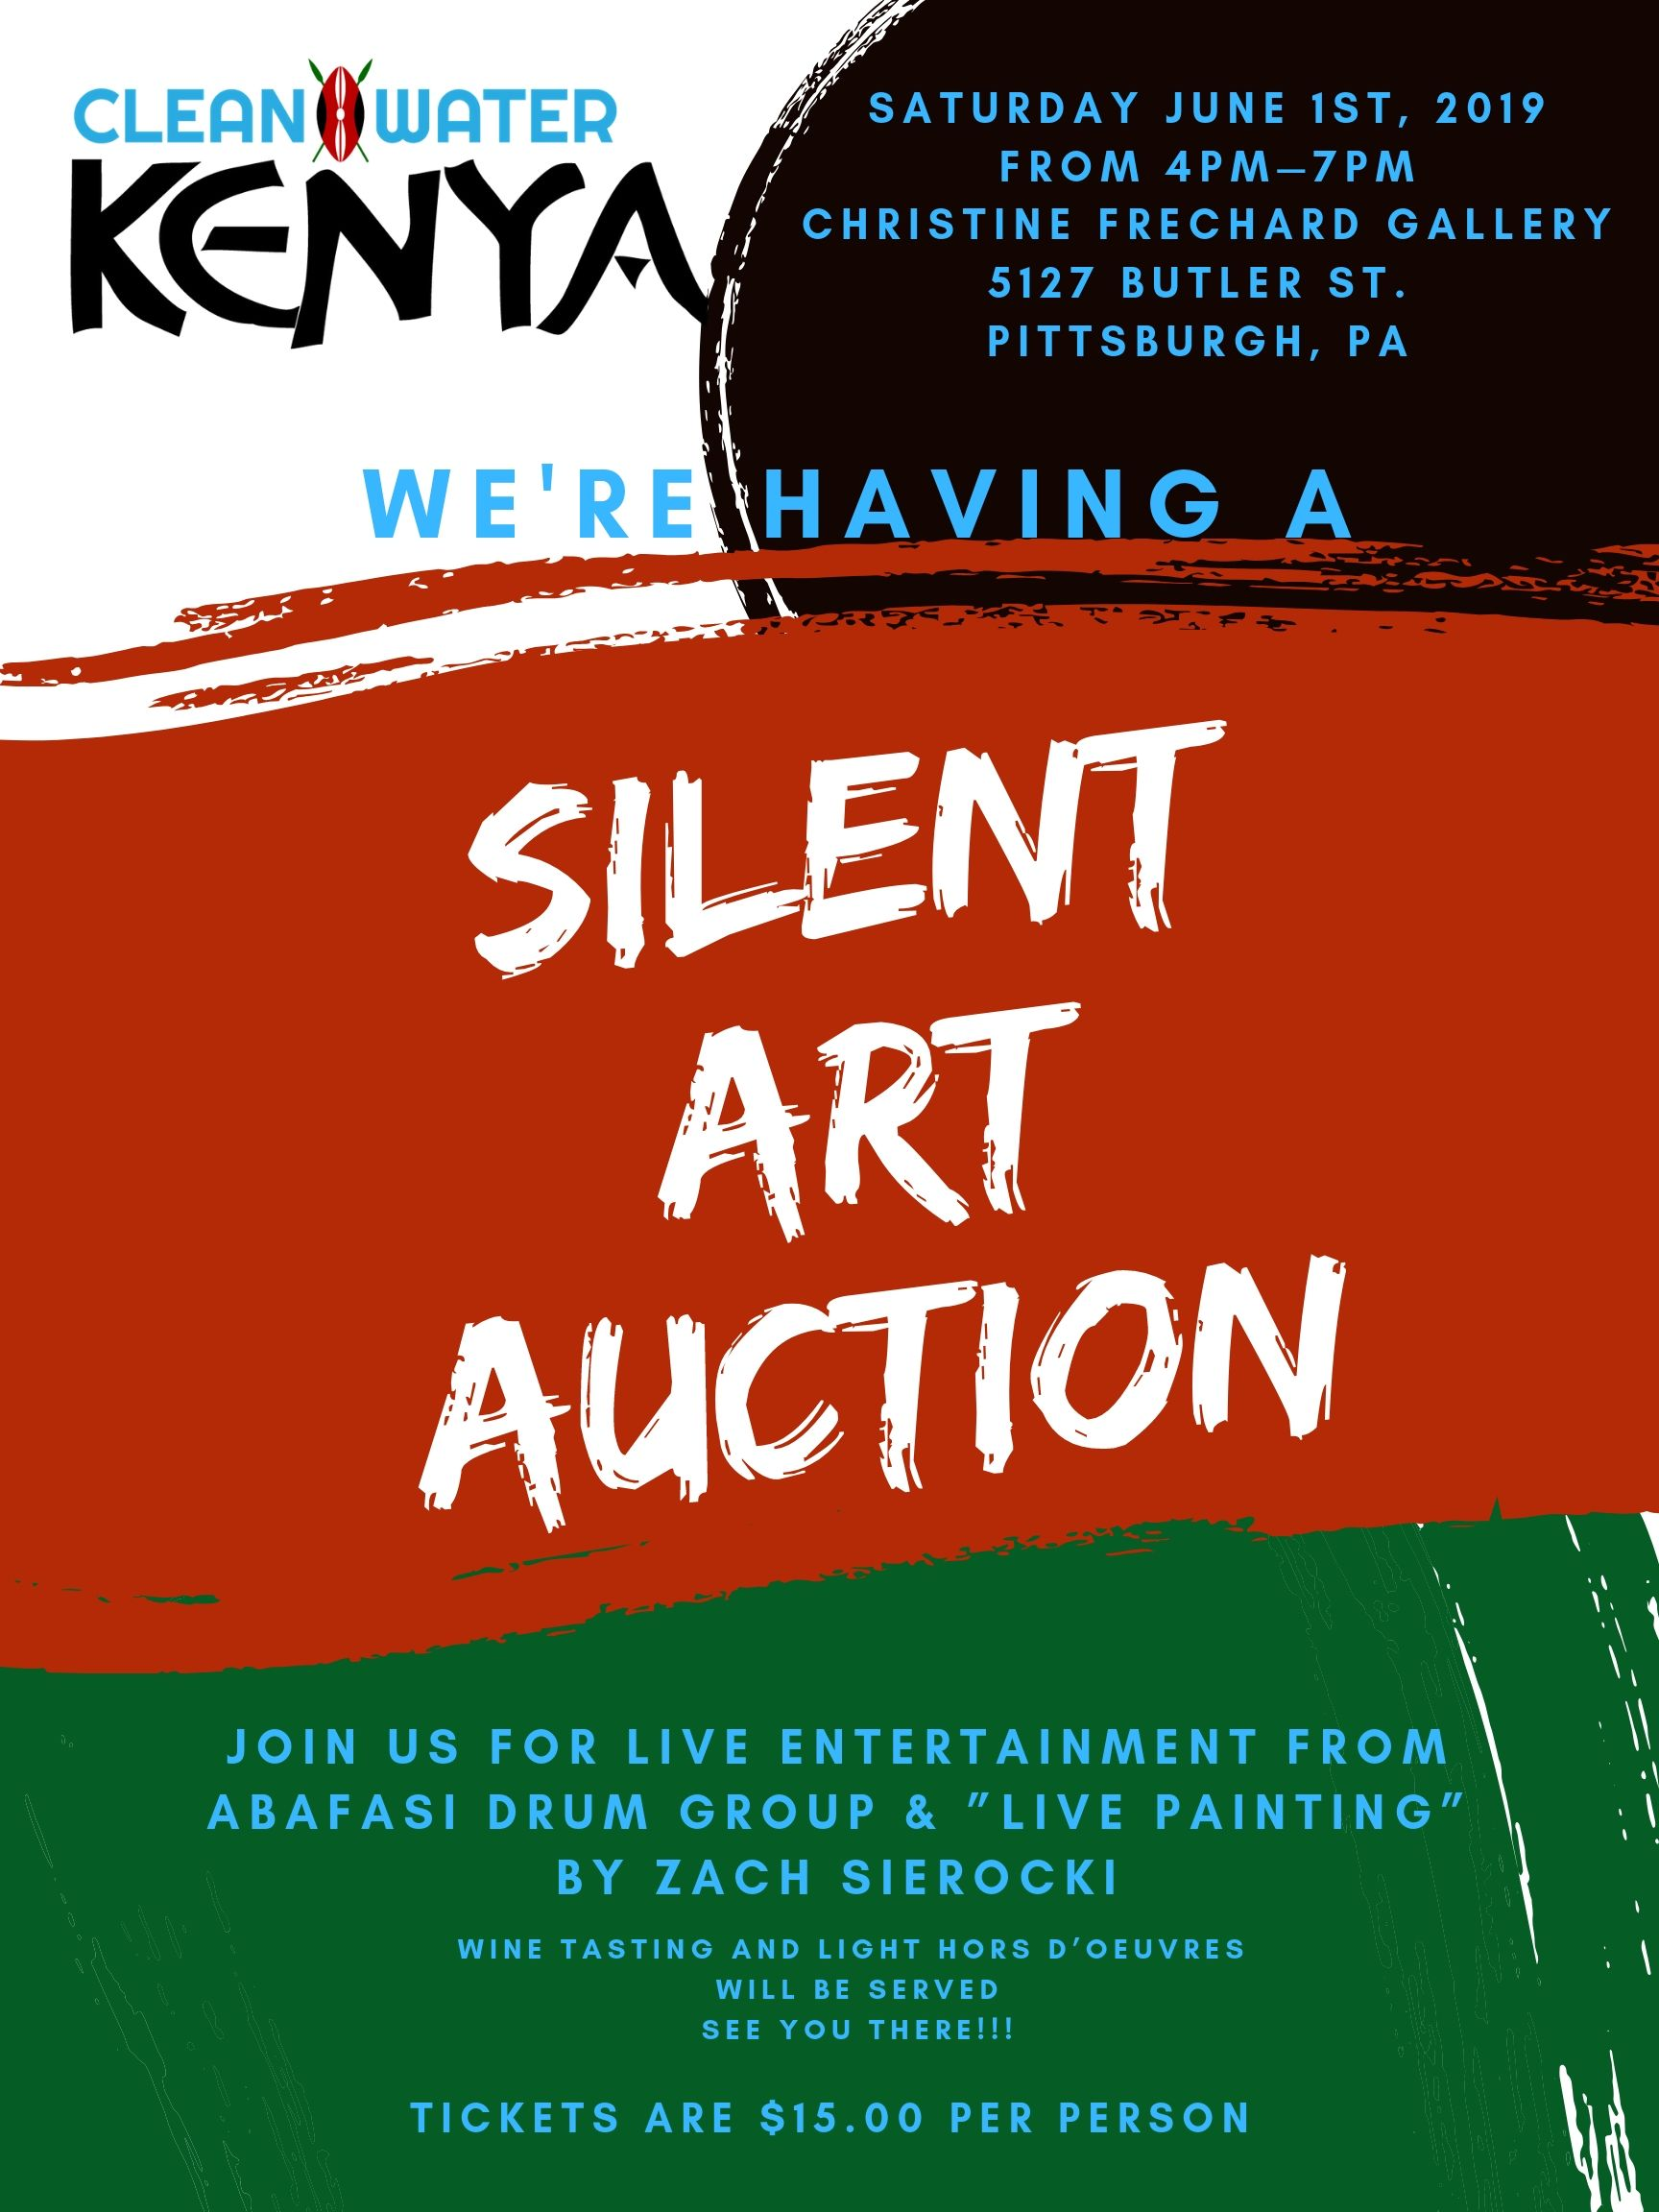 Silent Art Auction Flyer (1) (002).jpg